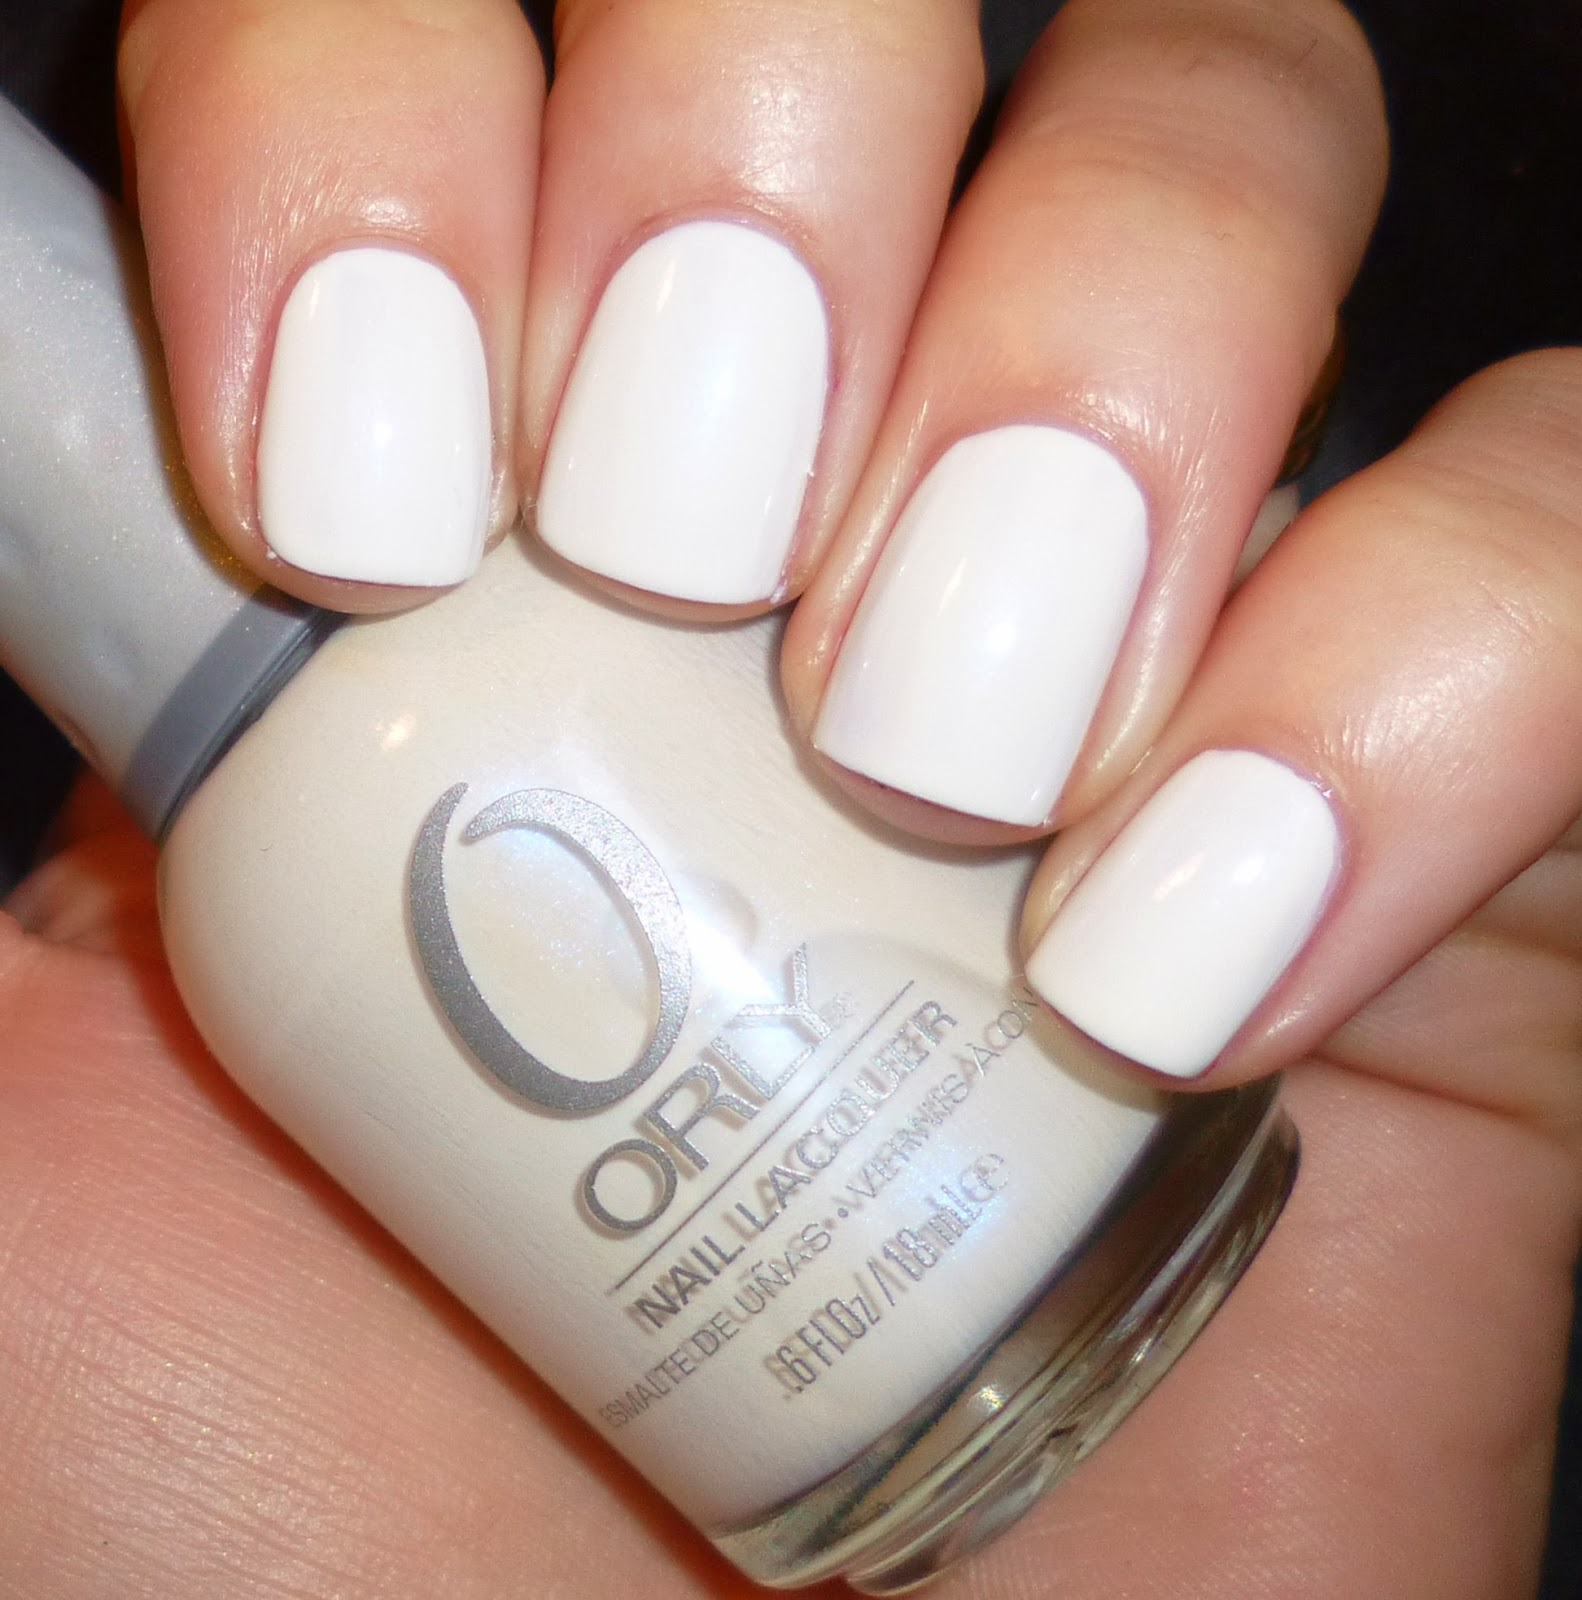 Lou is Perfectly Polished: Swatch: Orly Dayglow